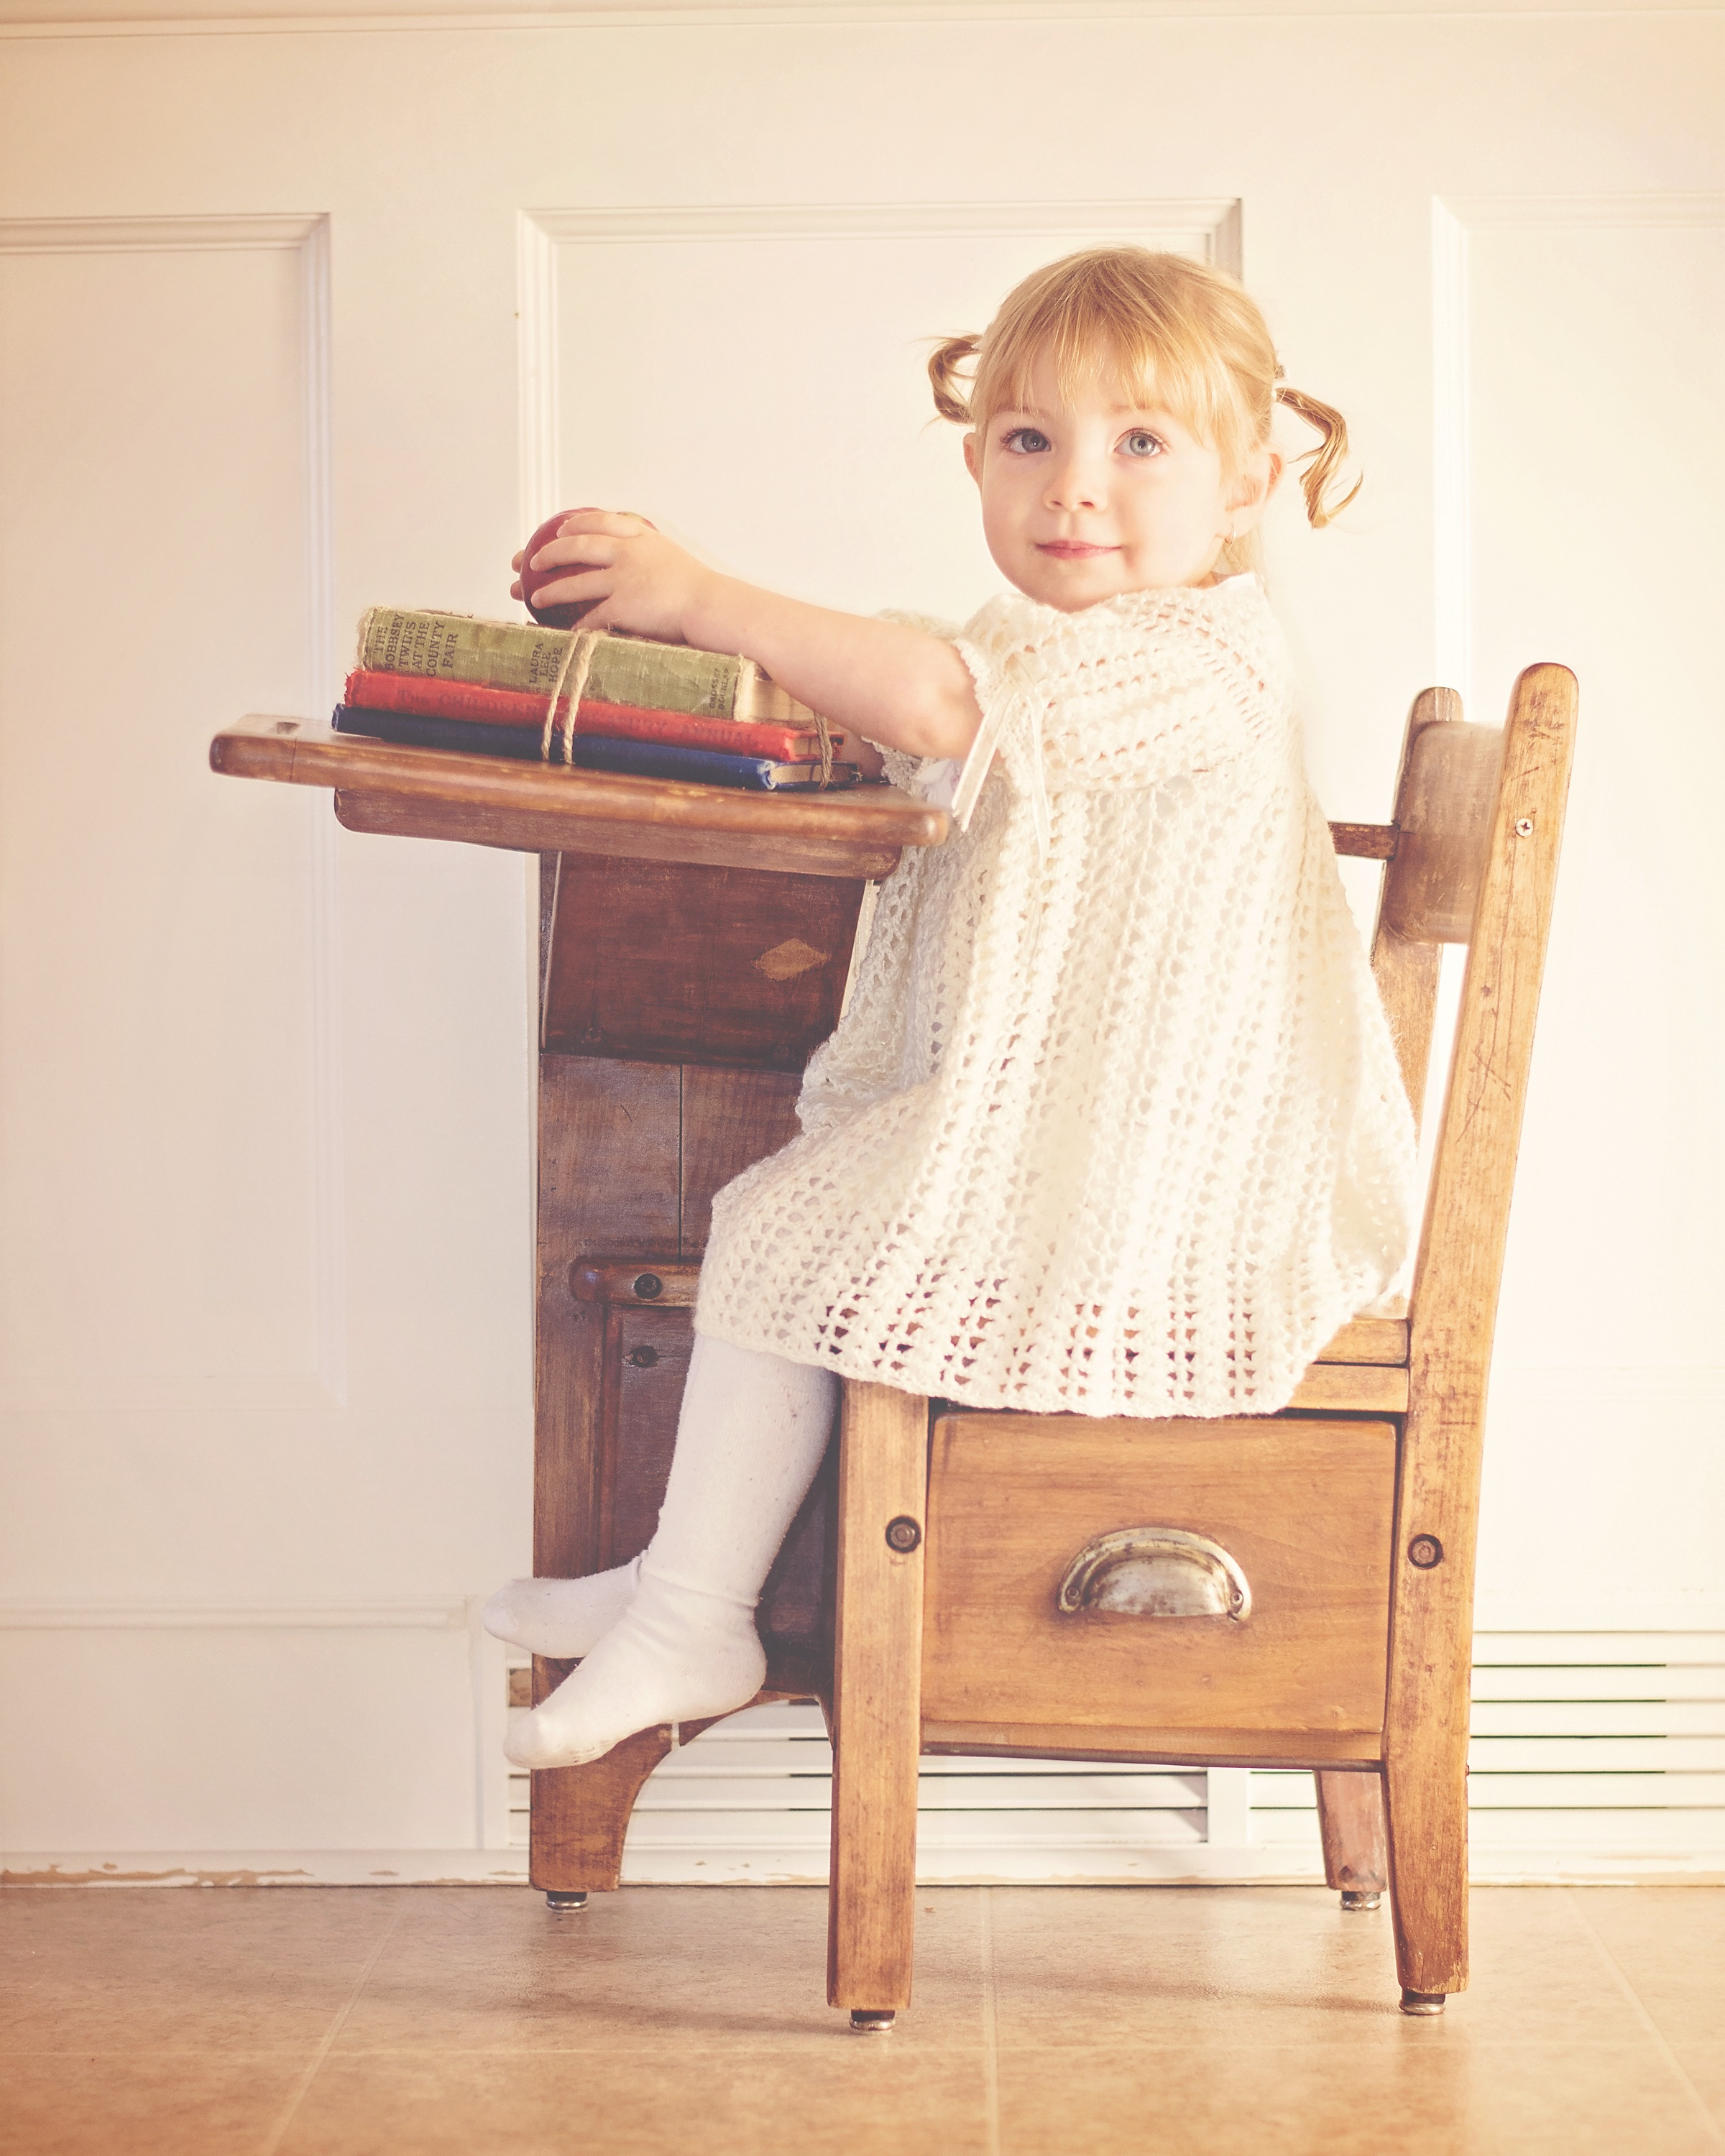 Sitting Chair: Girl In White Dress Sitting On Brown Wooden Chair · Free